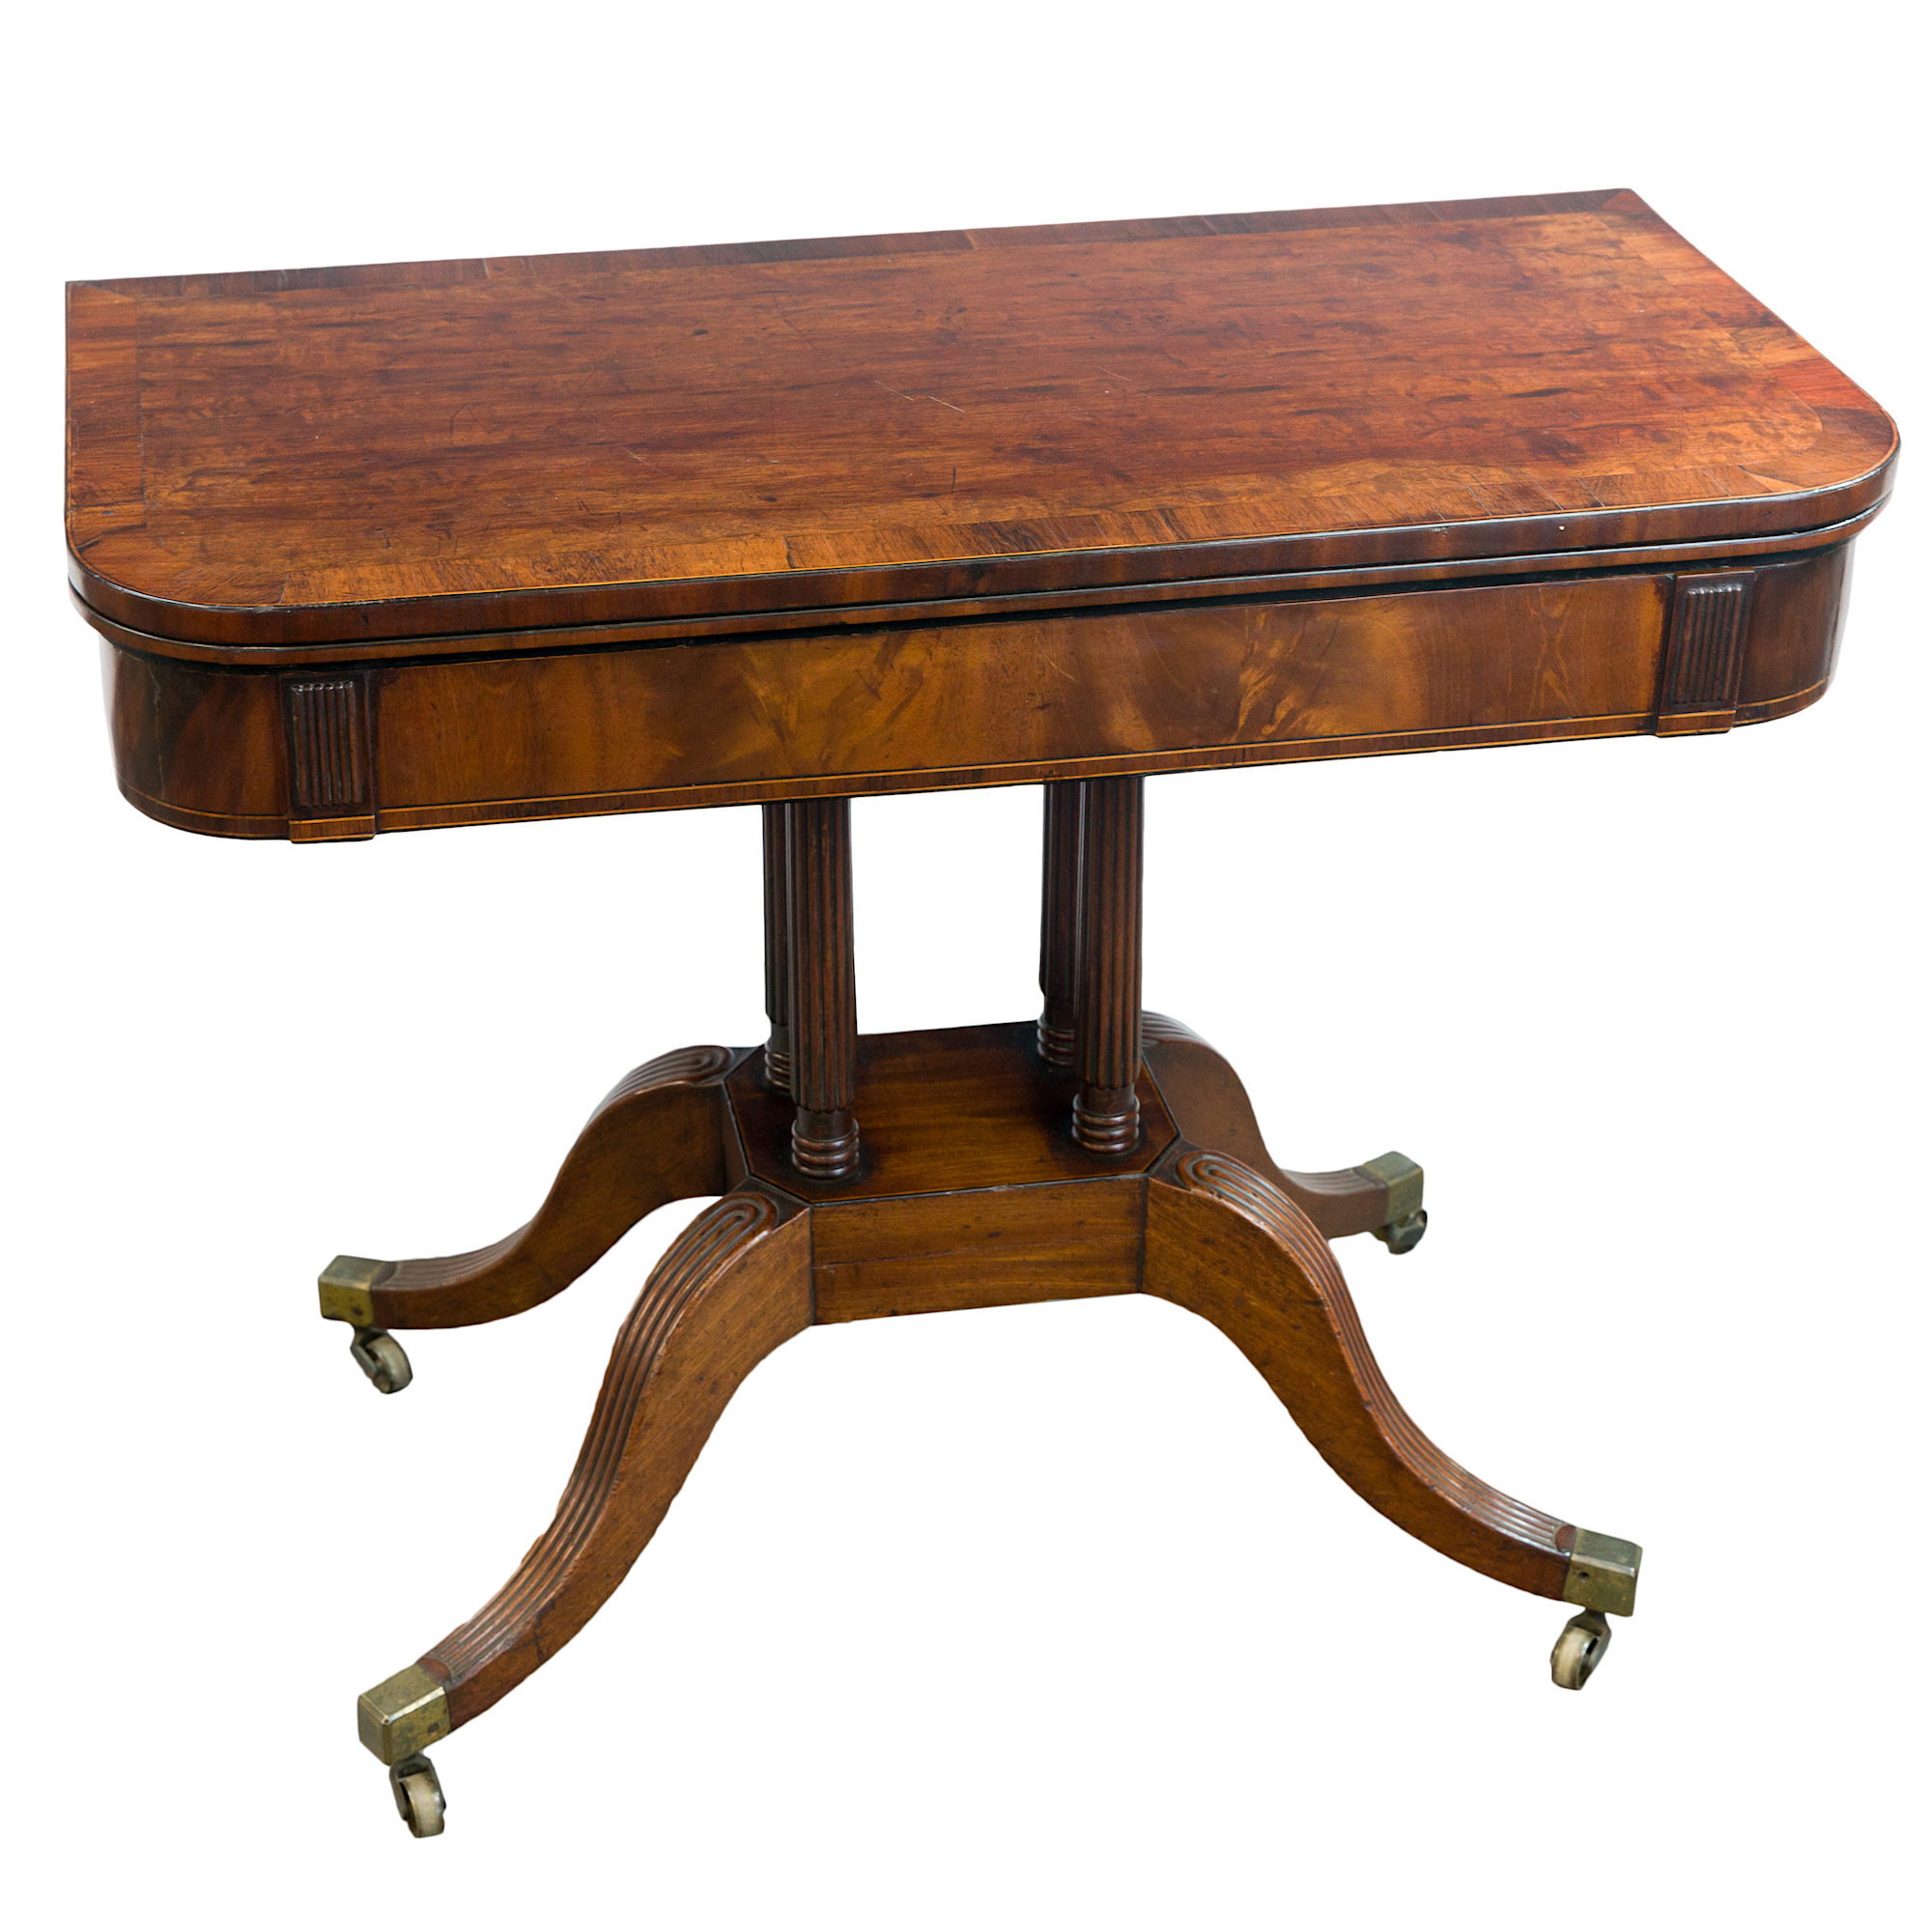 'Regency Plum Pudding Mahogany and Rosewood Banded Foldover Tea Table Circa 1815'